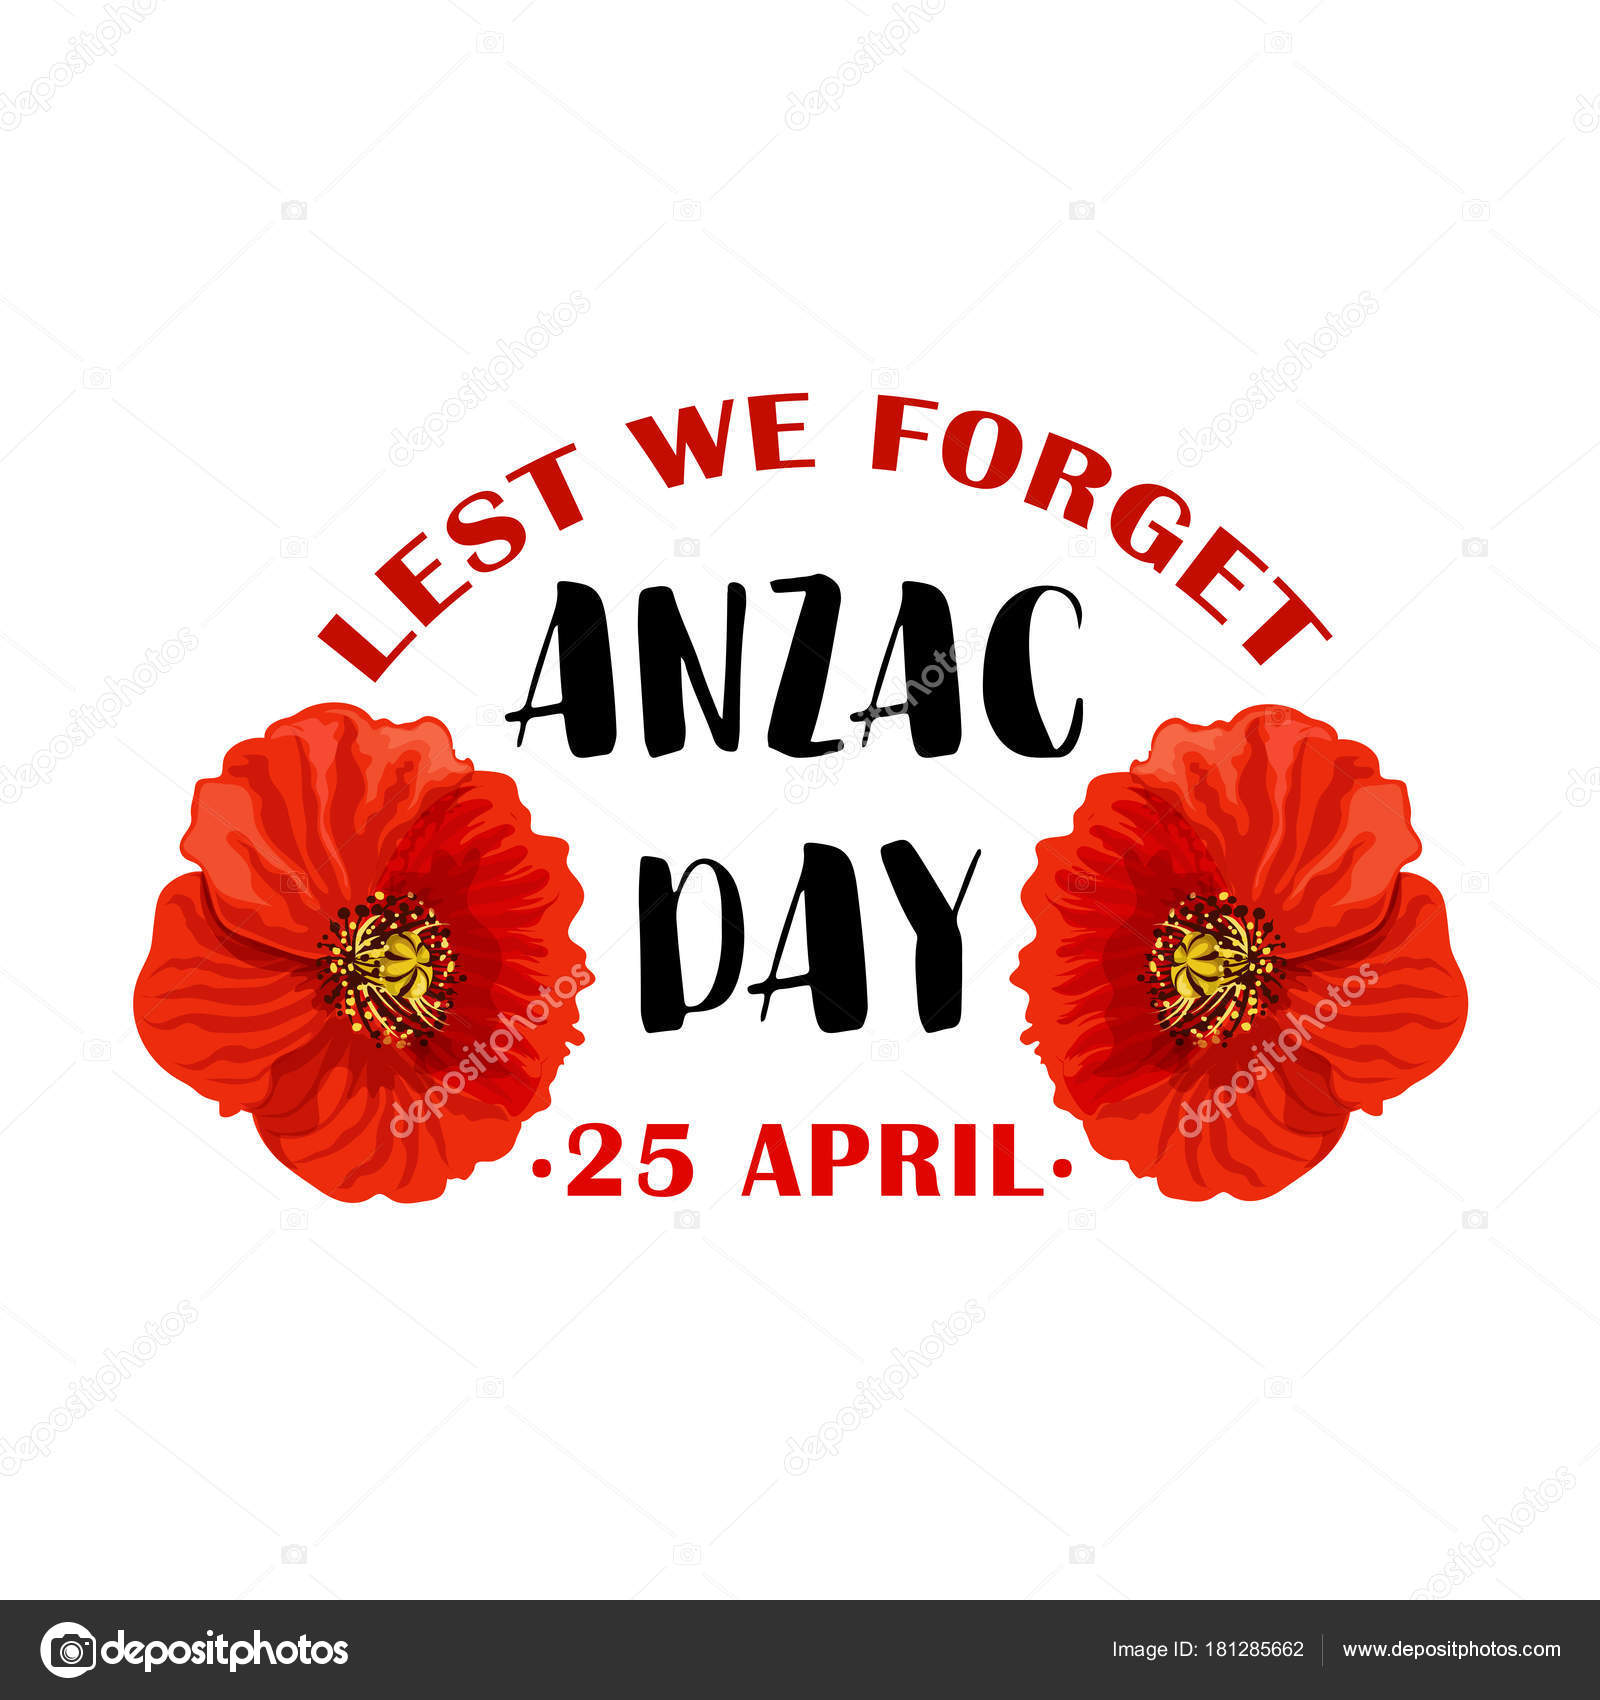 Red poppy flower symbol of anzac remembrance day stock vector red poppy flower symbol for anzac day remembrance day of australian and new zealand army corps or world war soldier campaign anniversary floral card design biocorpaavc Images